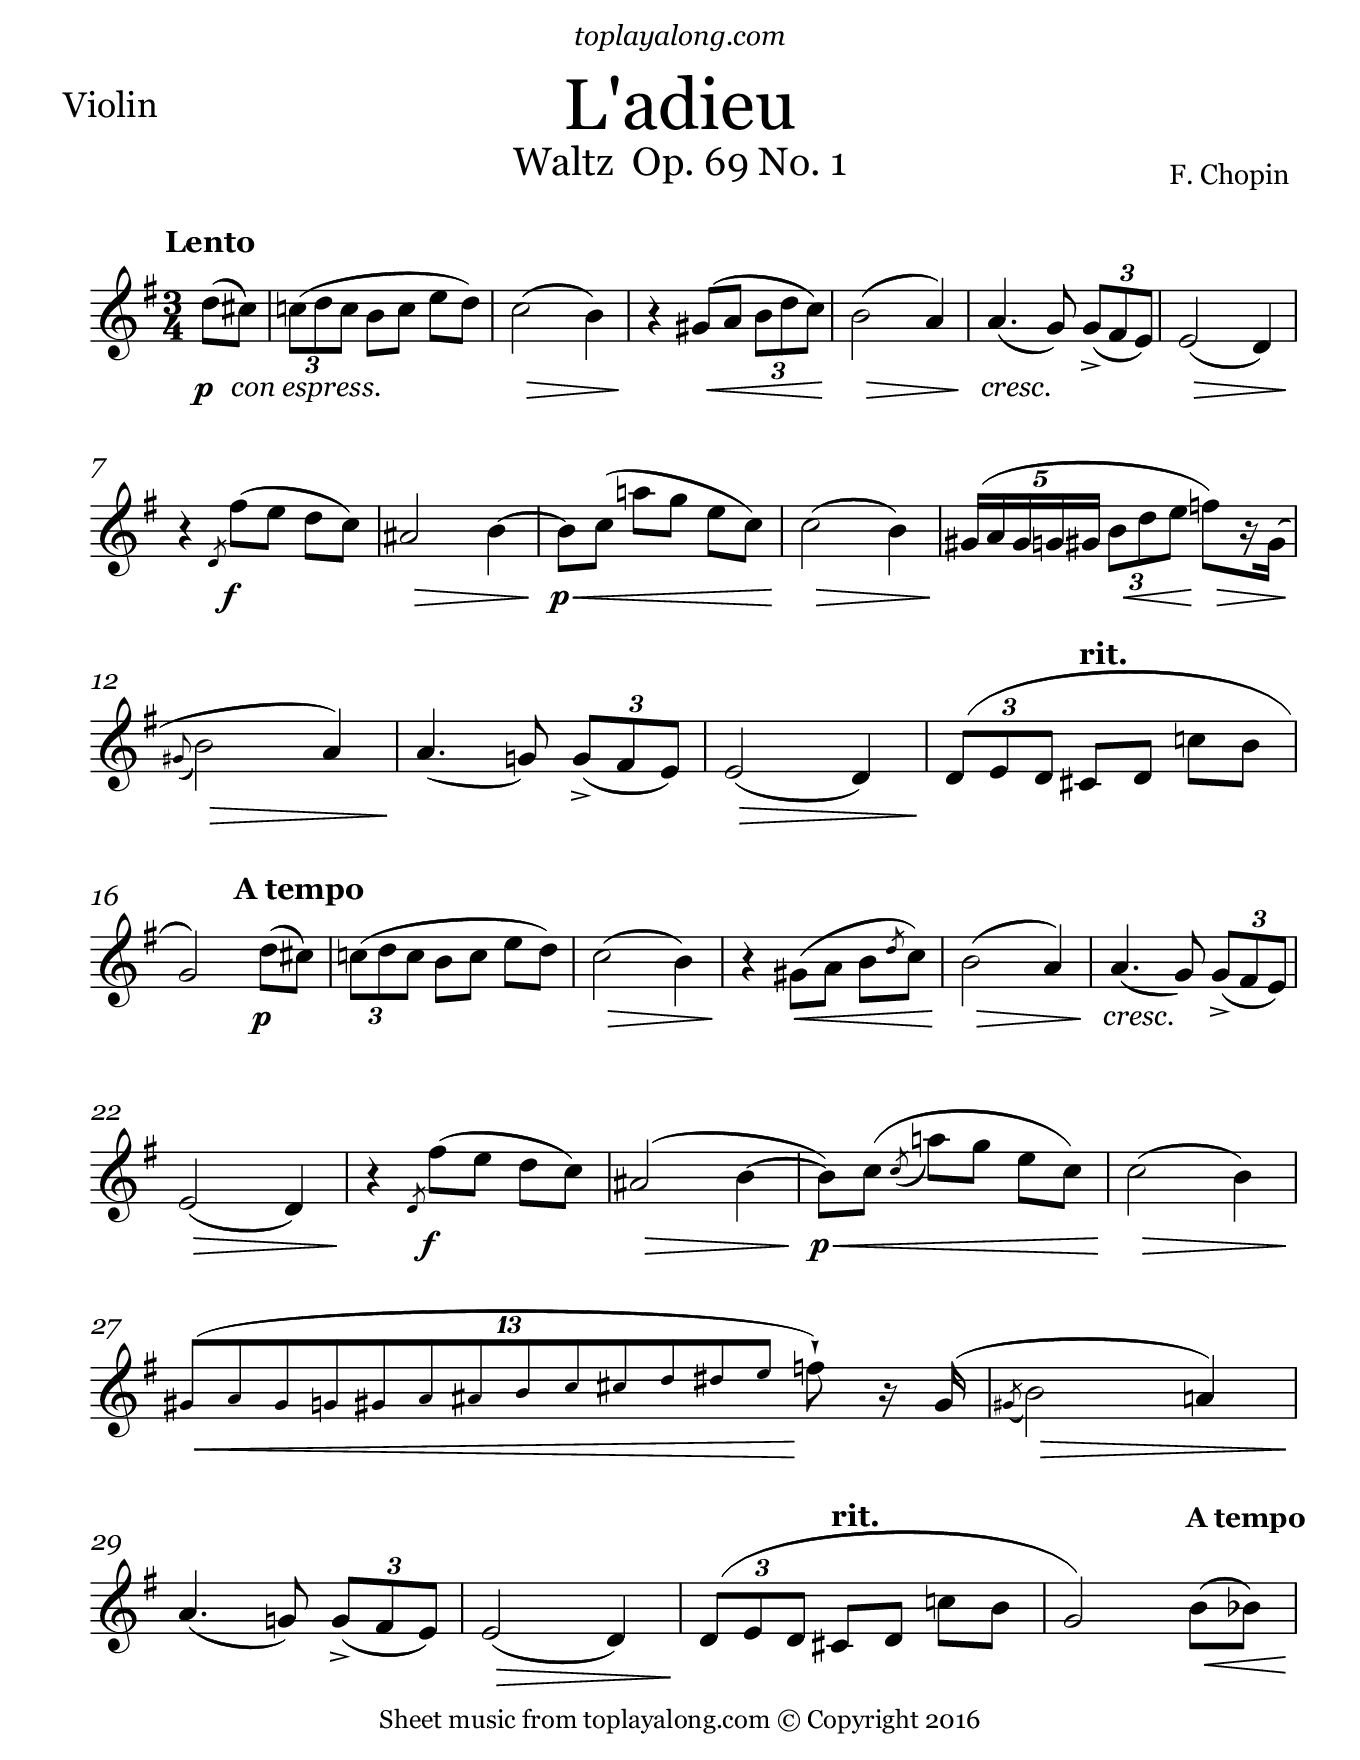 L'adieu Waltz Op. 69 No. 1 by Chopin. Sheet music for Violin, page 1.